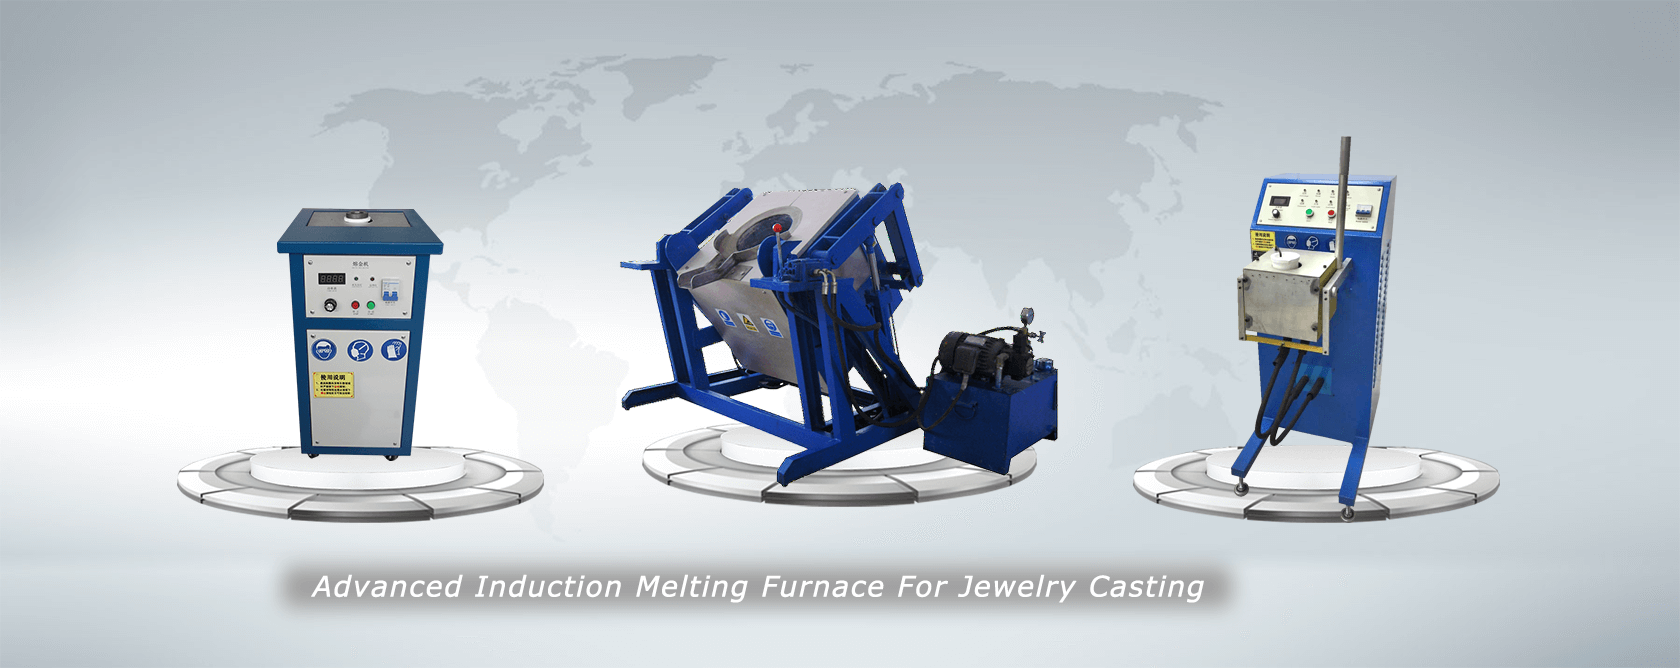 Advanced-Induction-Melting-Furnace-For-Jewelry-Casting